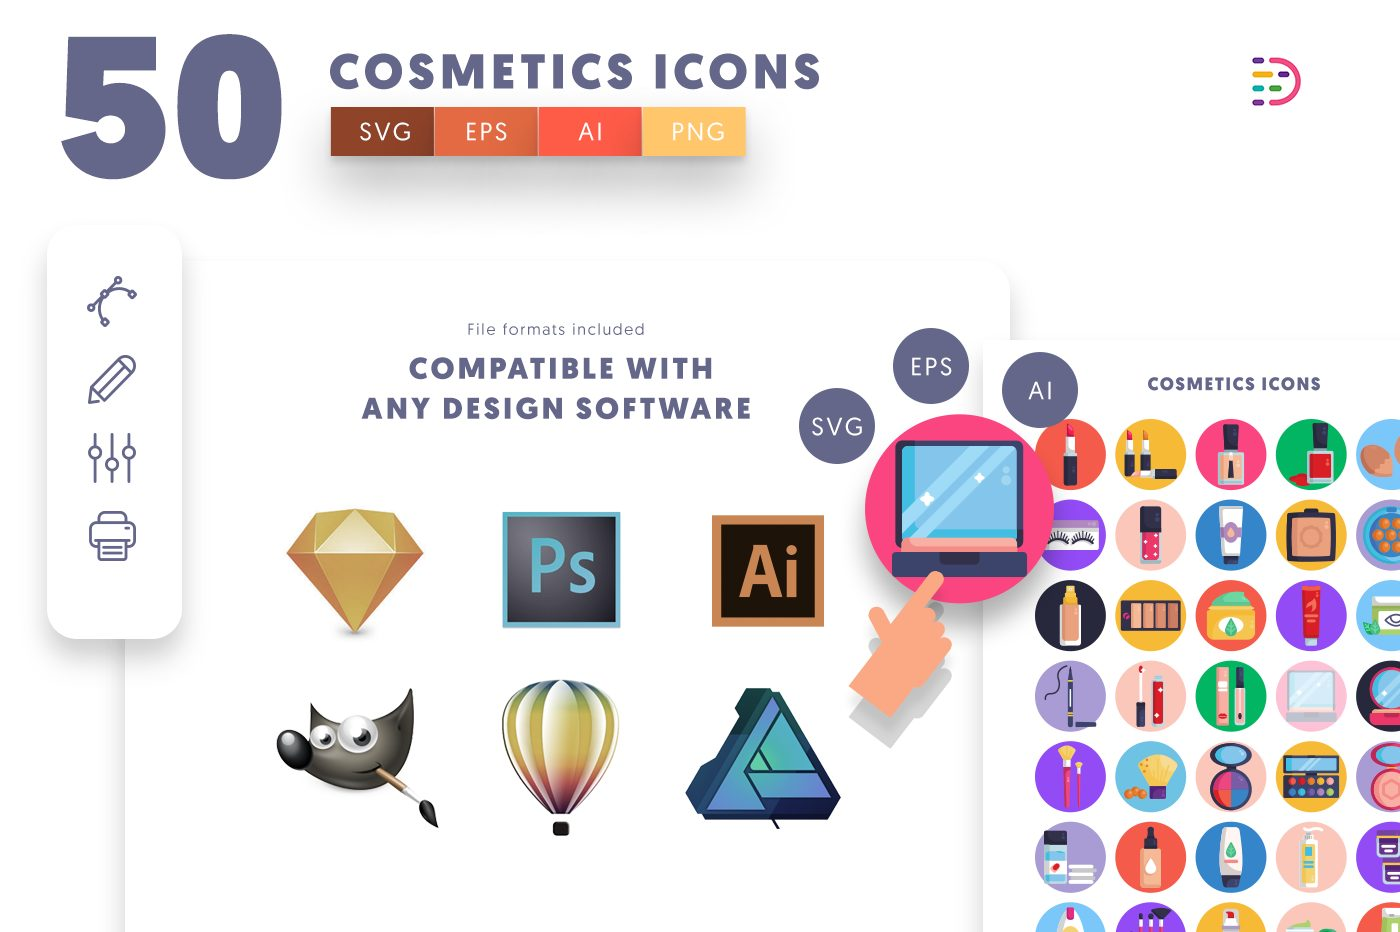 full vector 50 Cosmetics Icons EPS, SVG, PNG